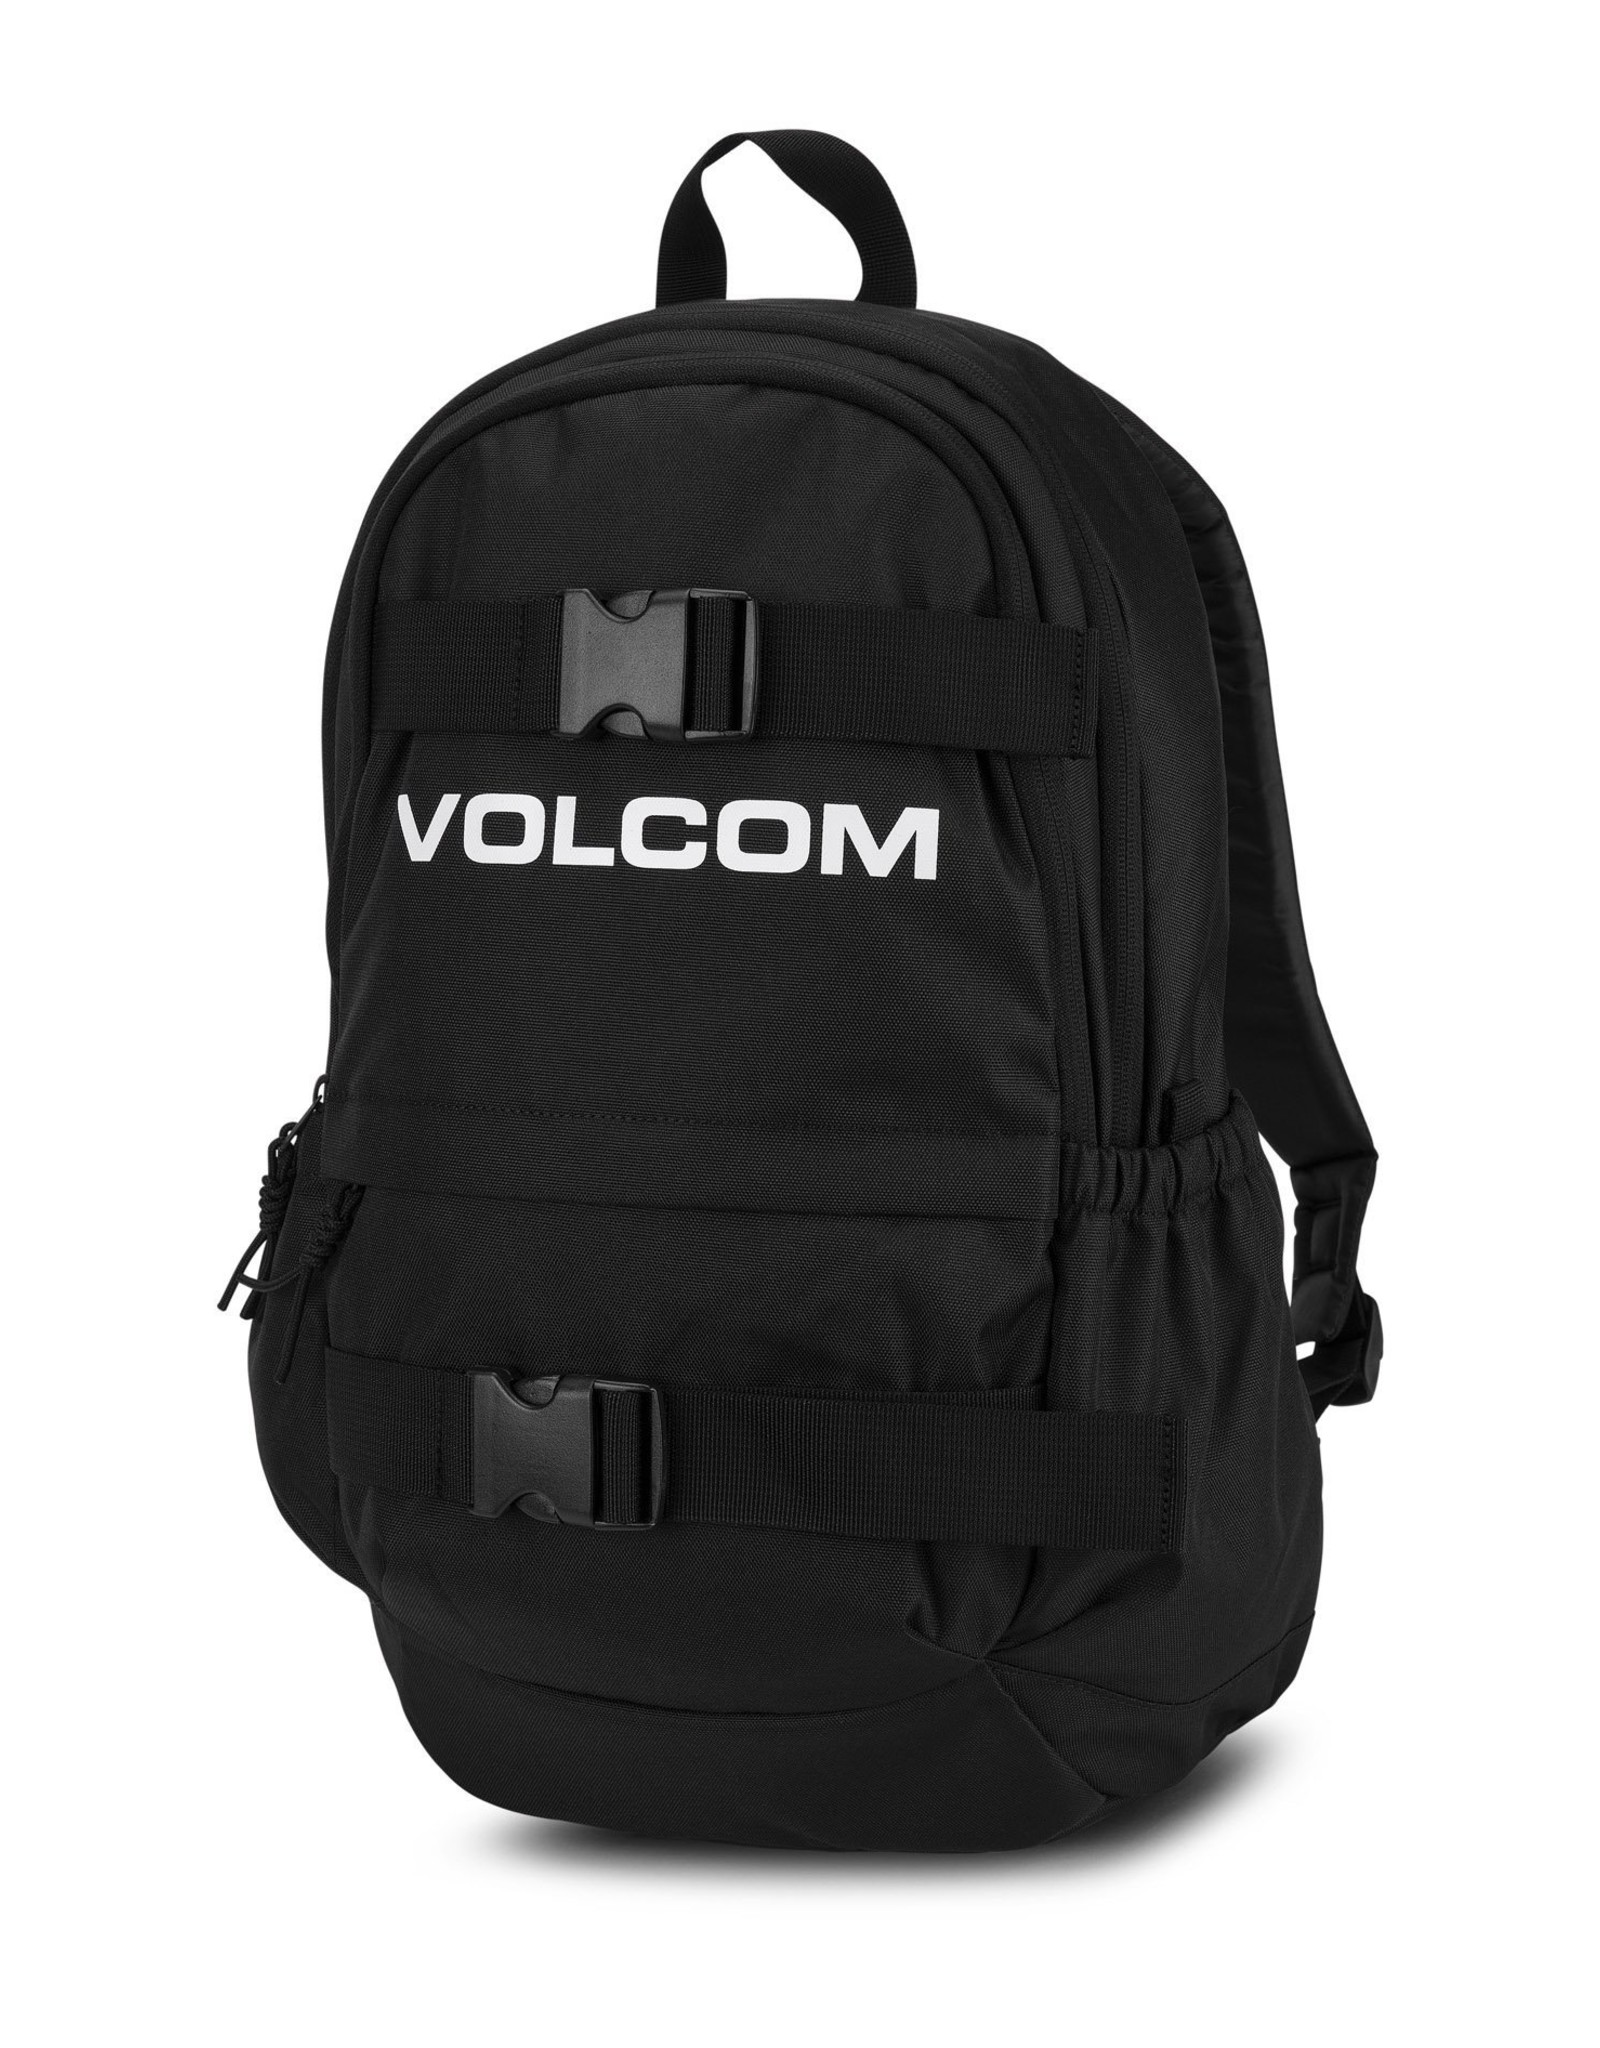 Volcom Substrate ll - Ink Black